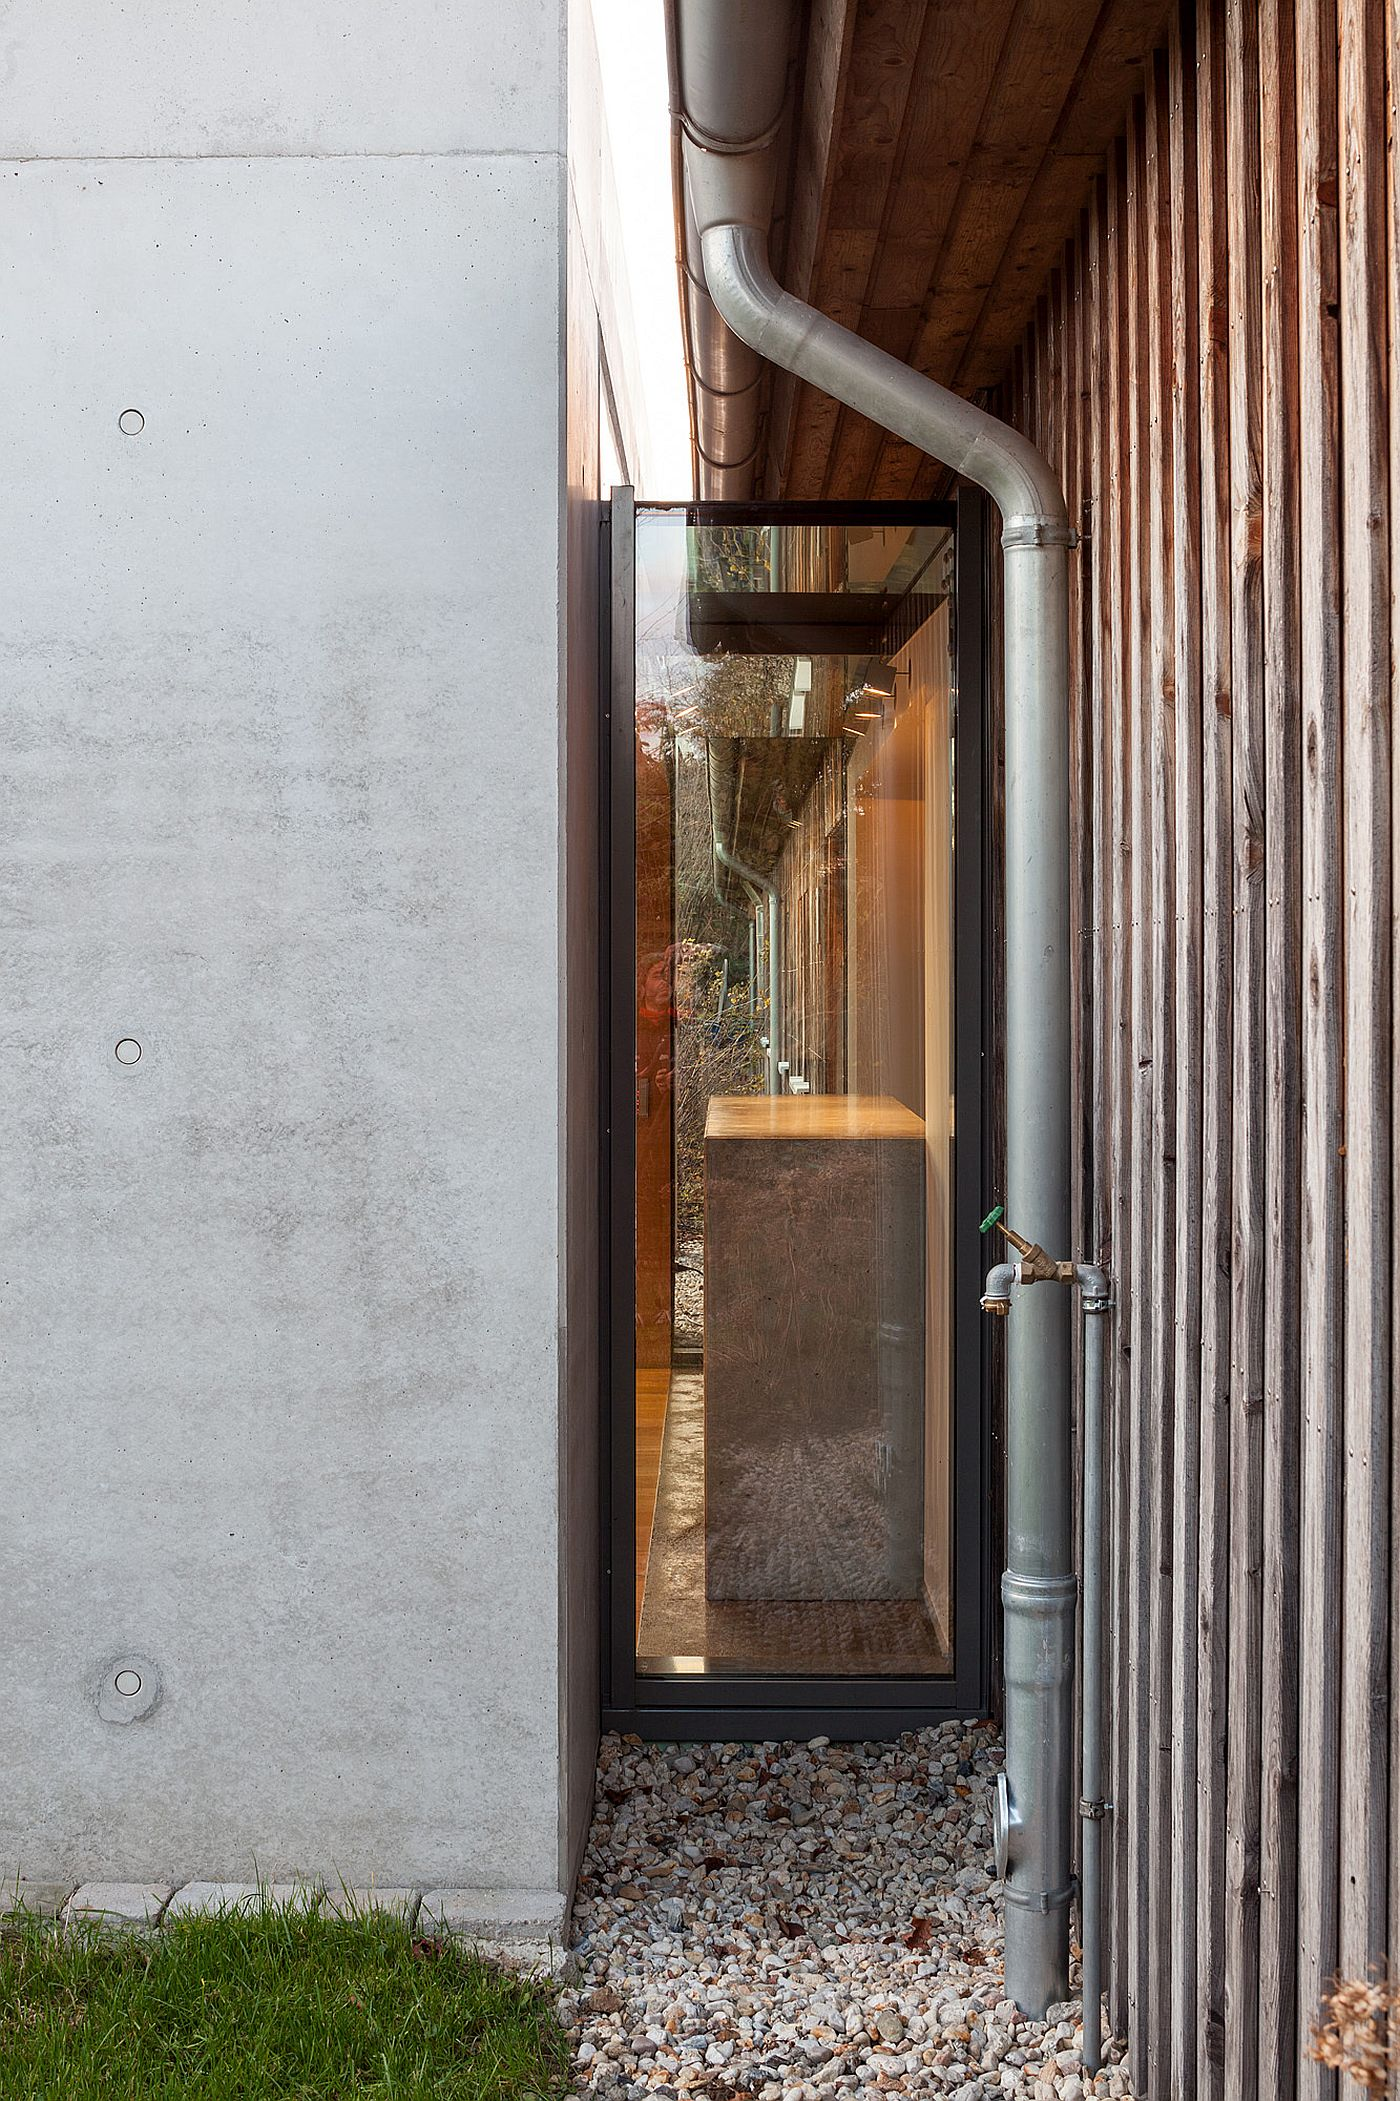 Glass doors and walls connect the interior with the landscape